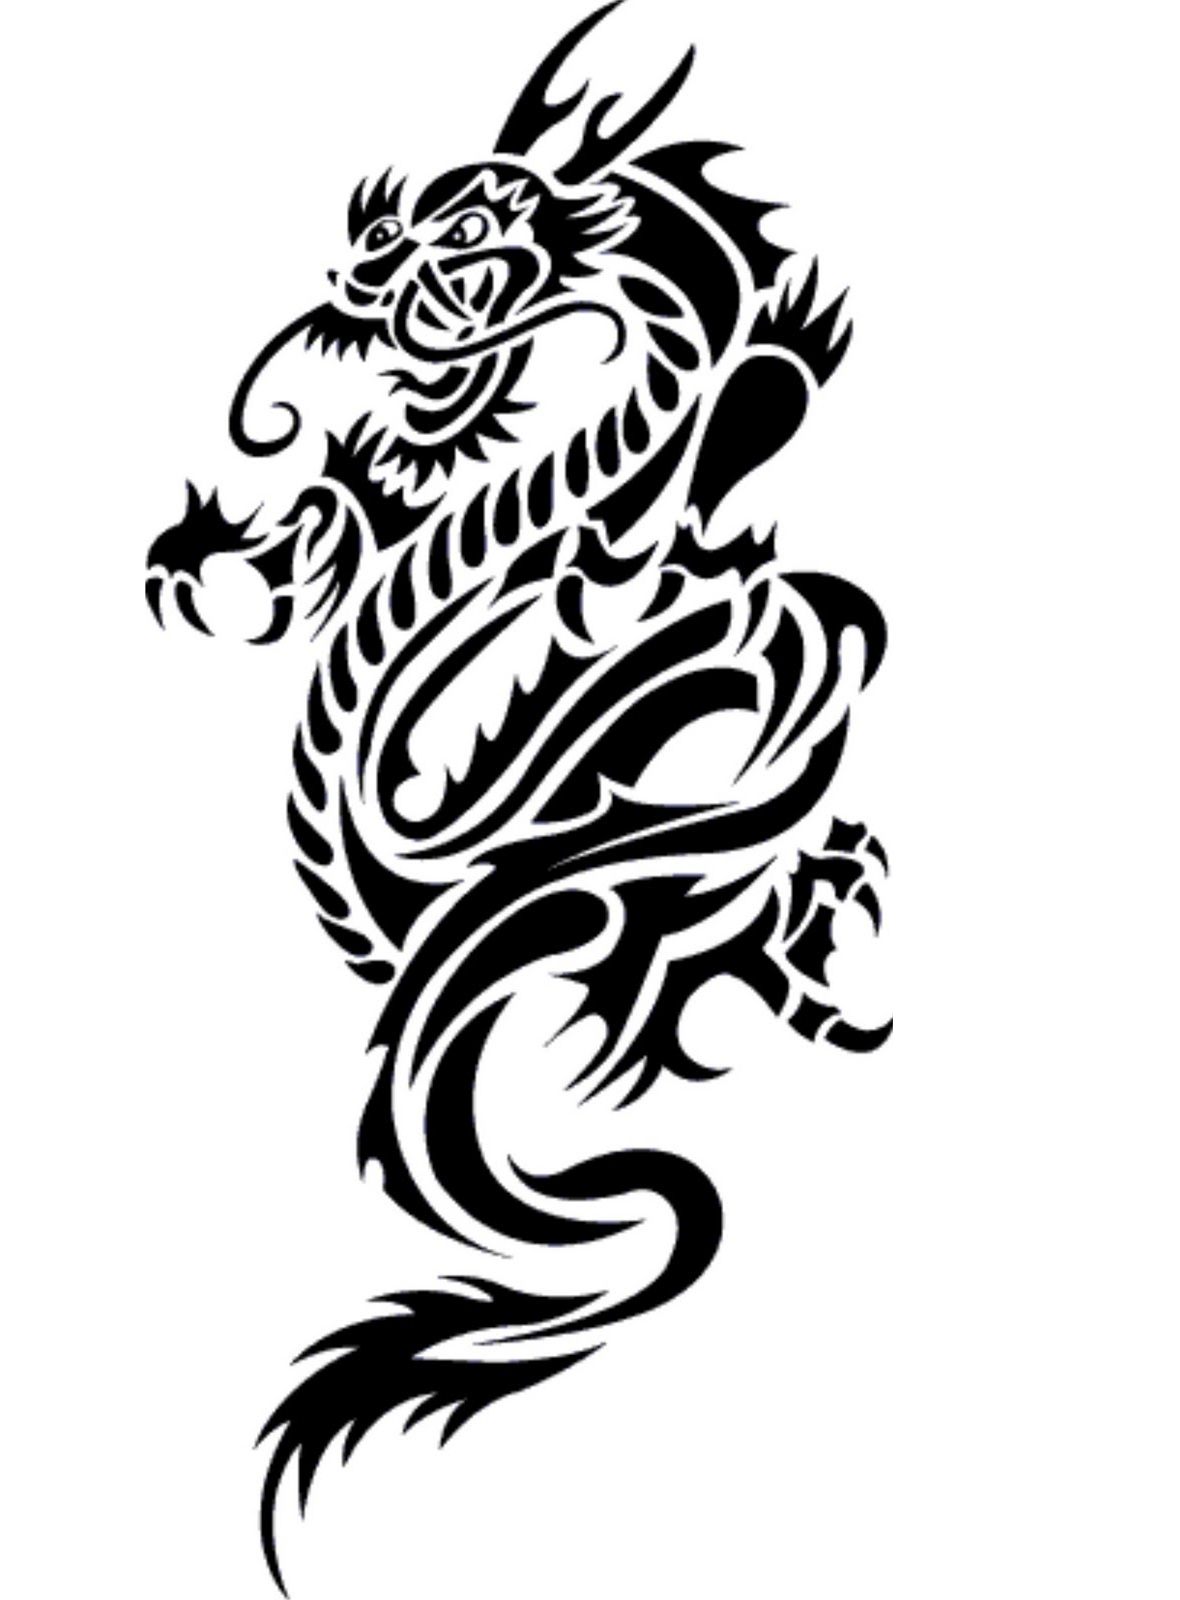 Tattoo designs the is. Body clipart dragon